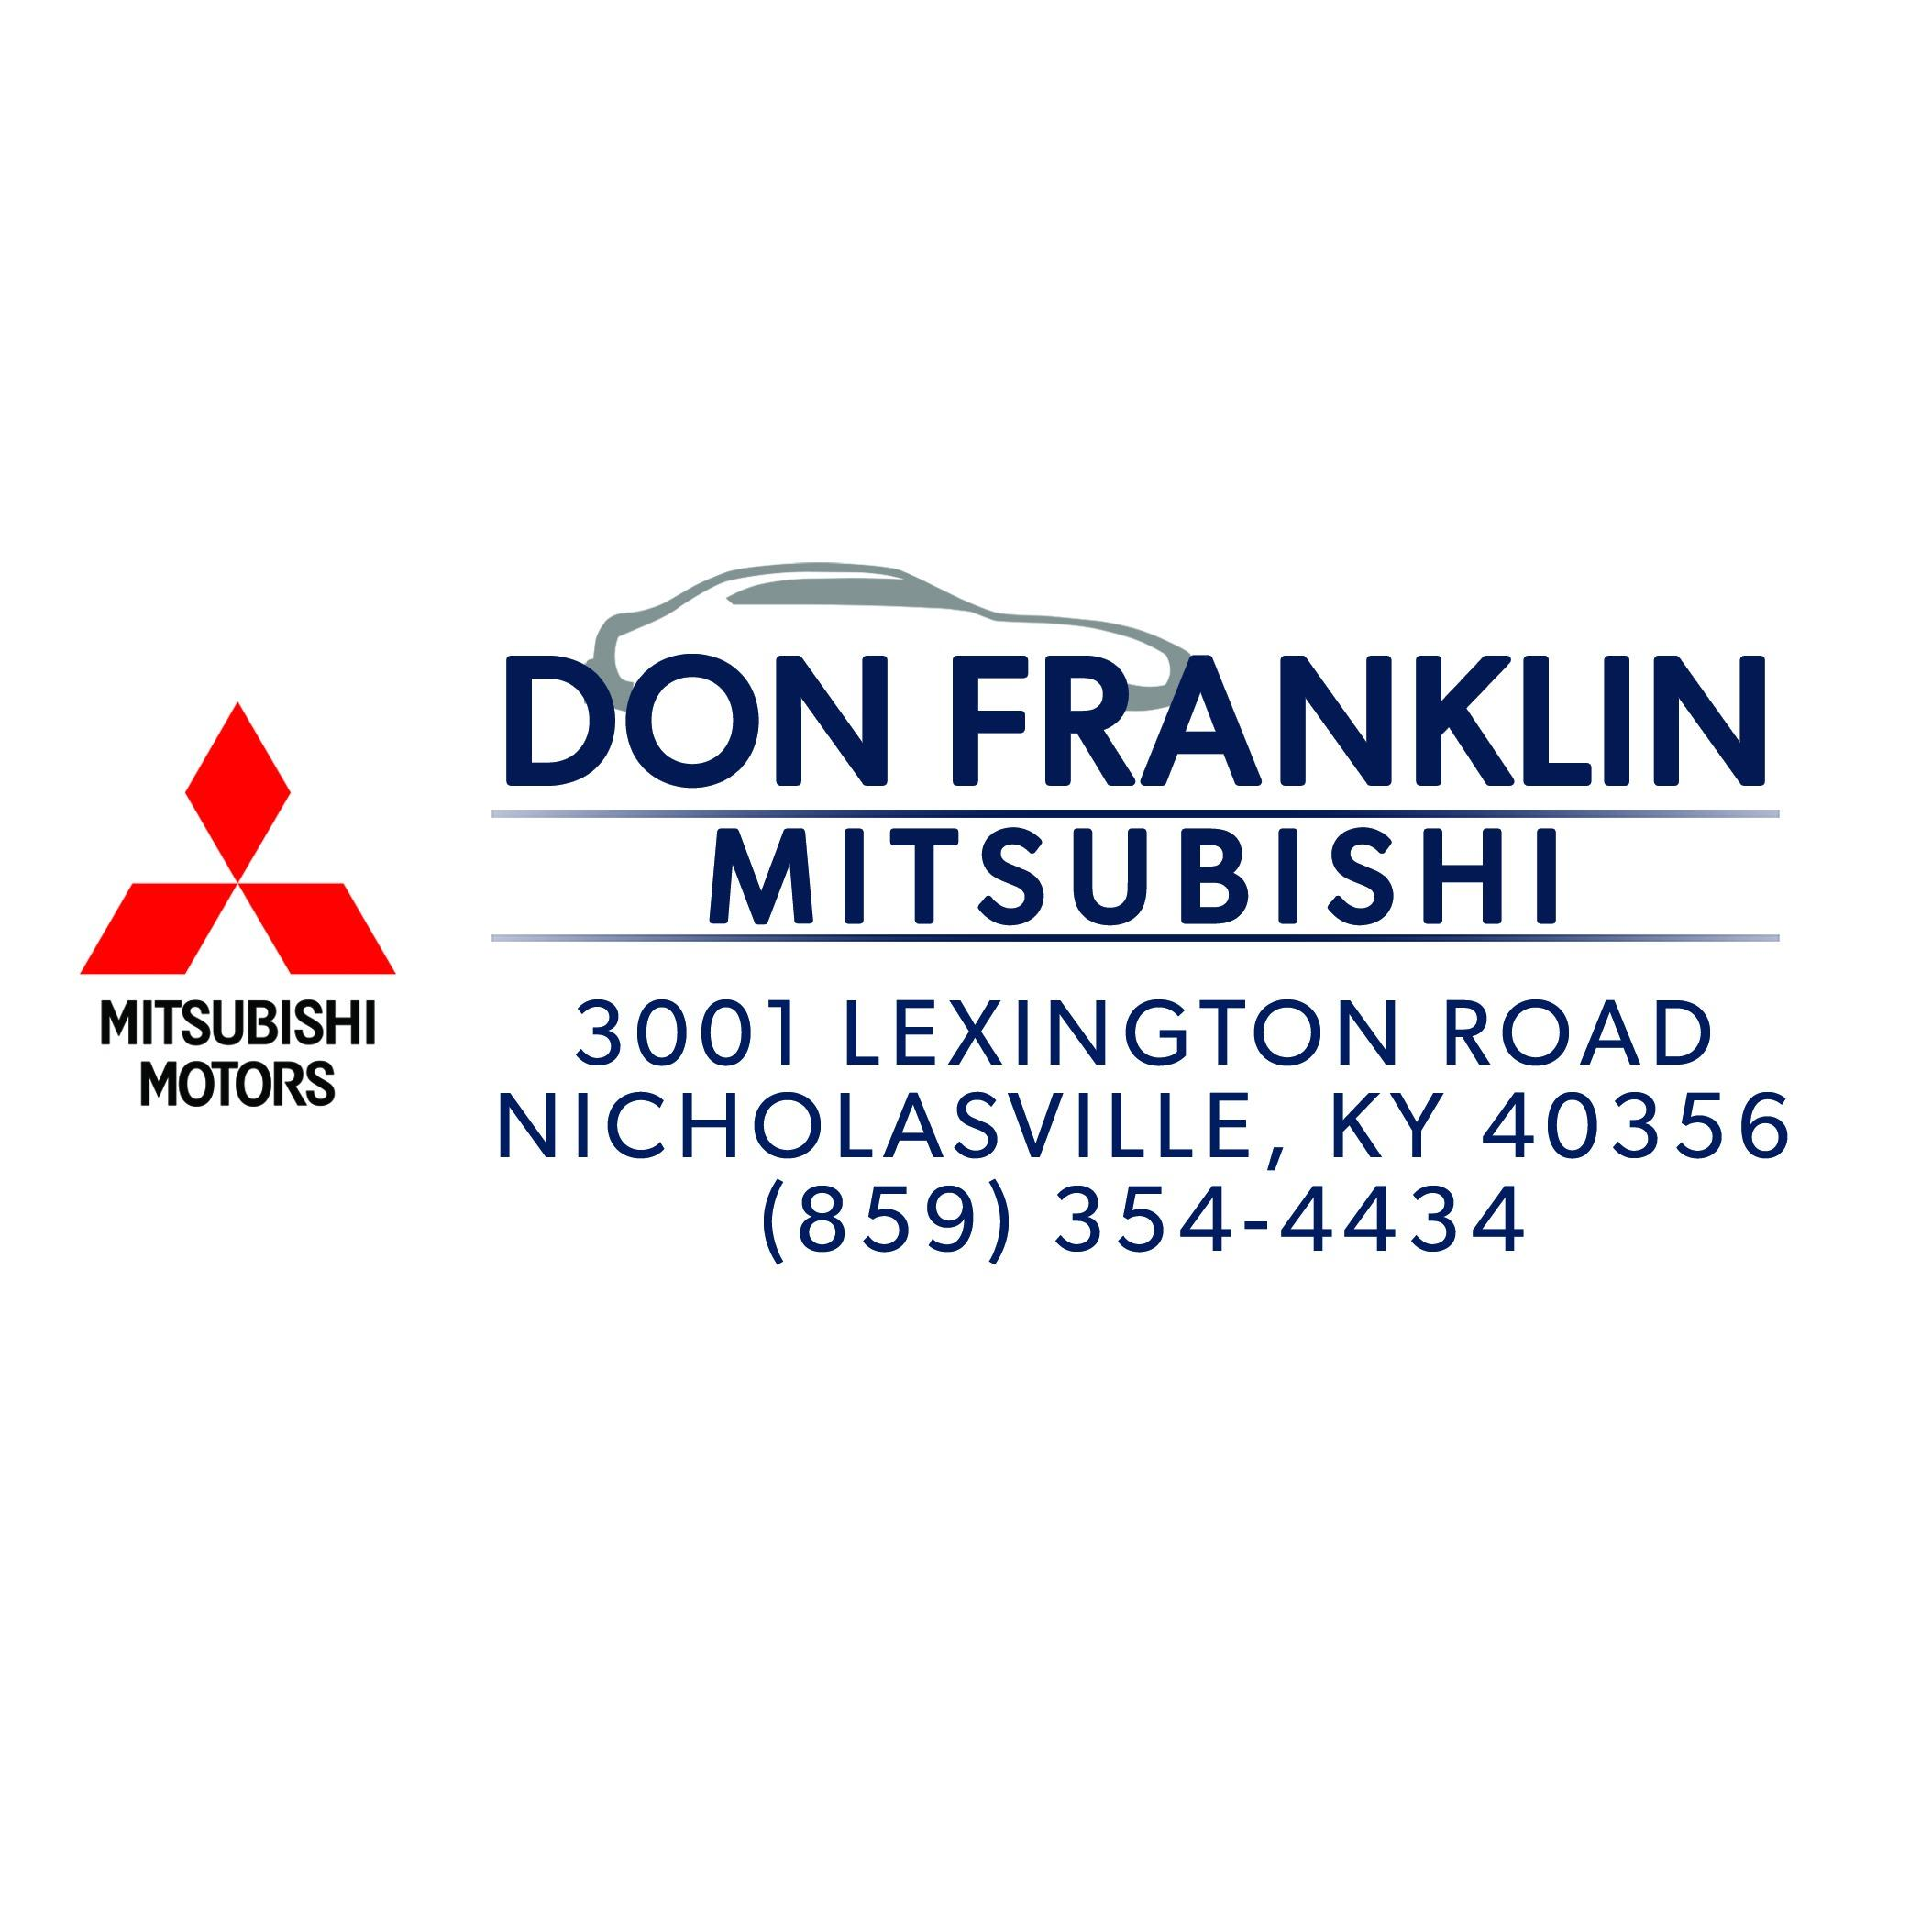 Don Franklin Mitsubishi